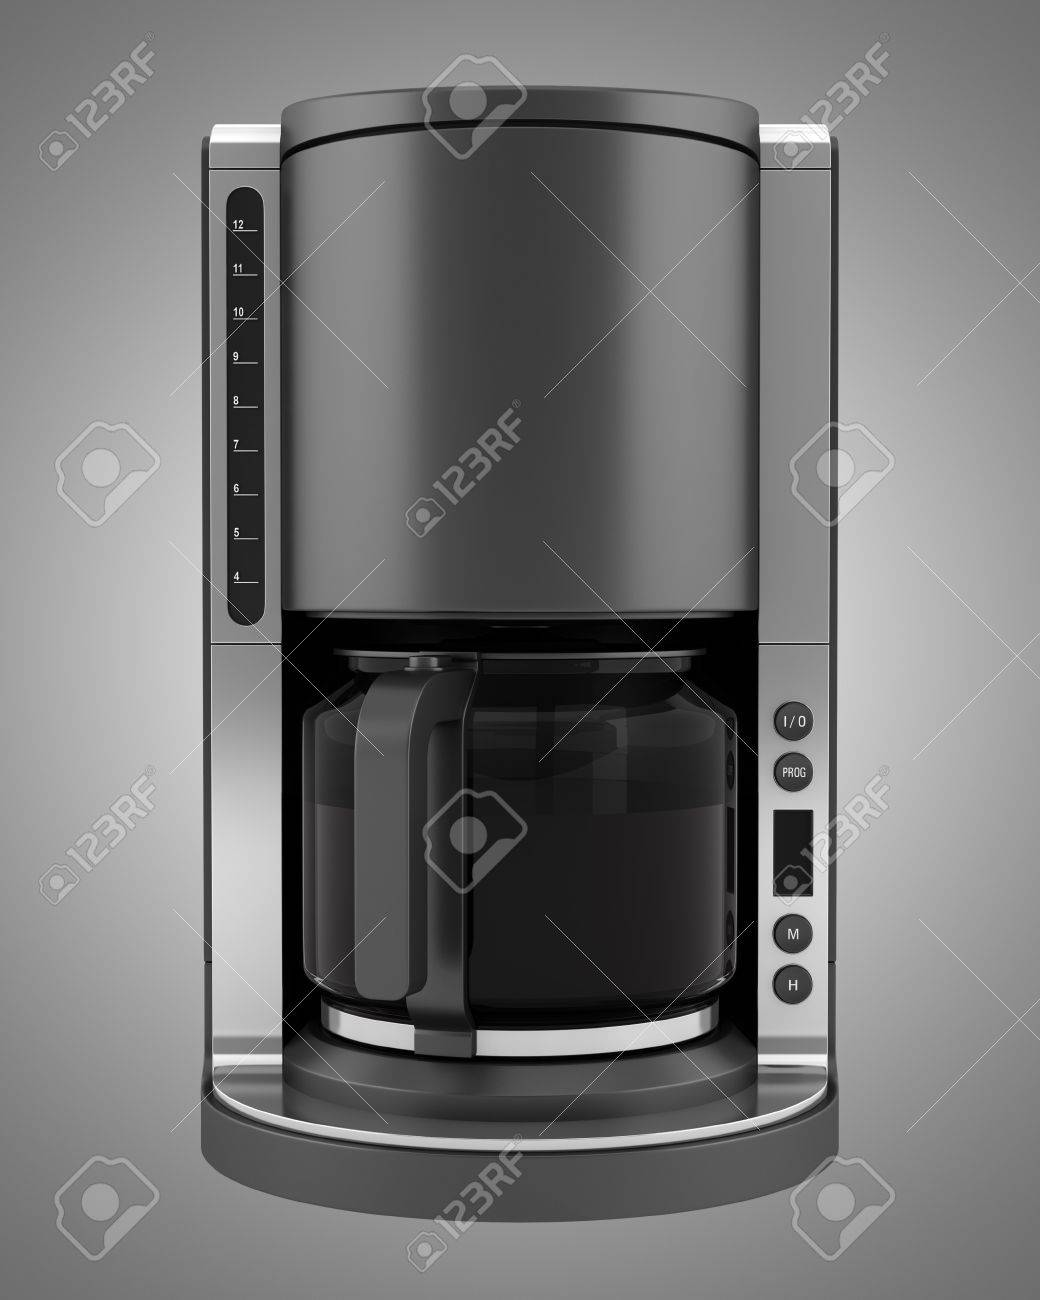 modern coffee machine isolated on gray background stock photo  - stock photo  modern coffee machine isolated on gray background